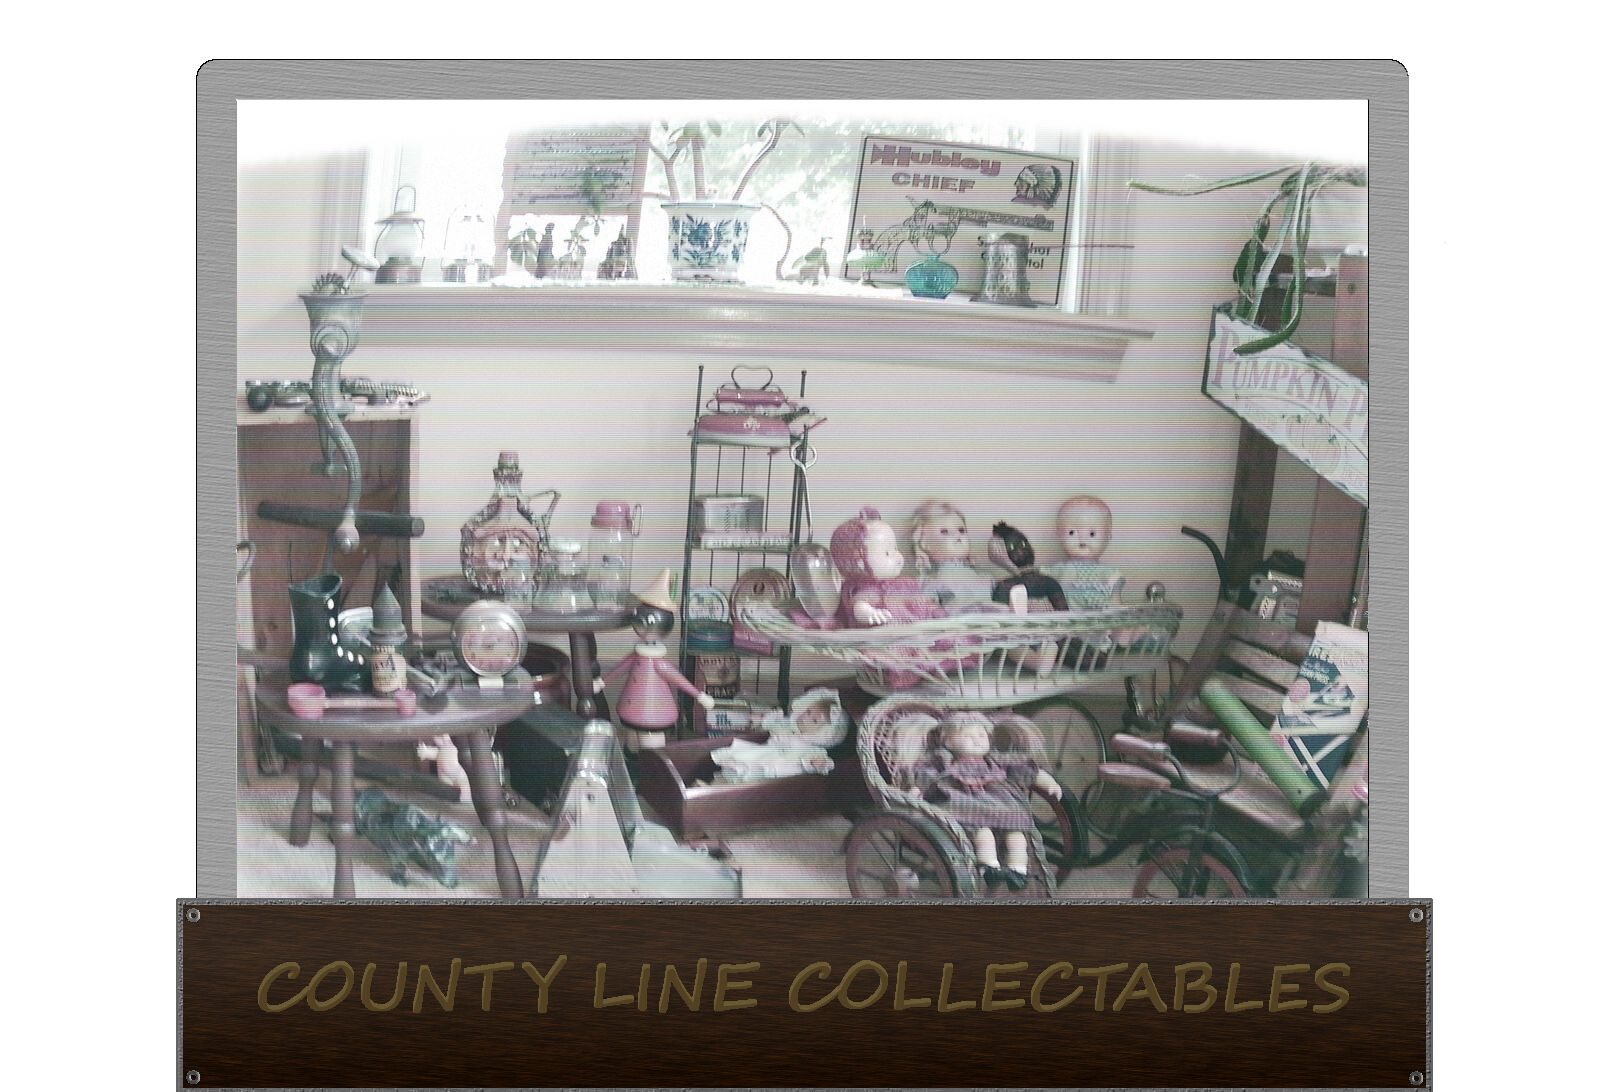 County Line Collectables